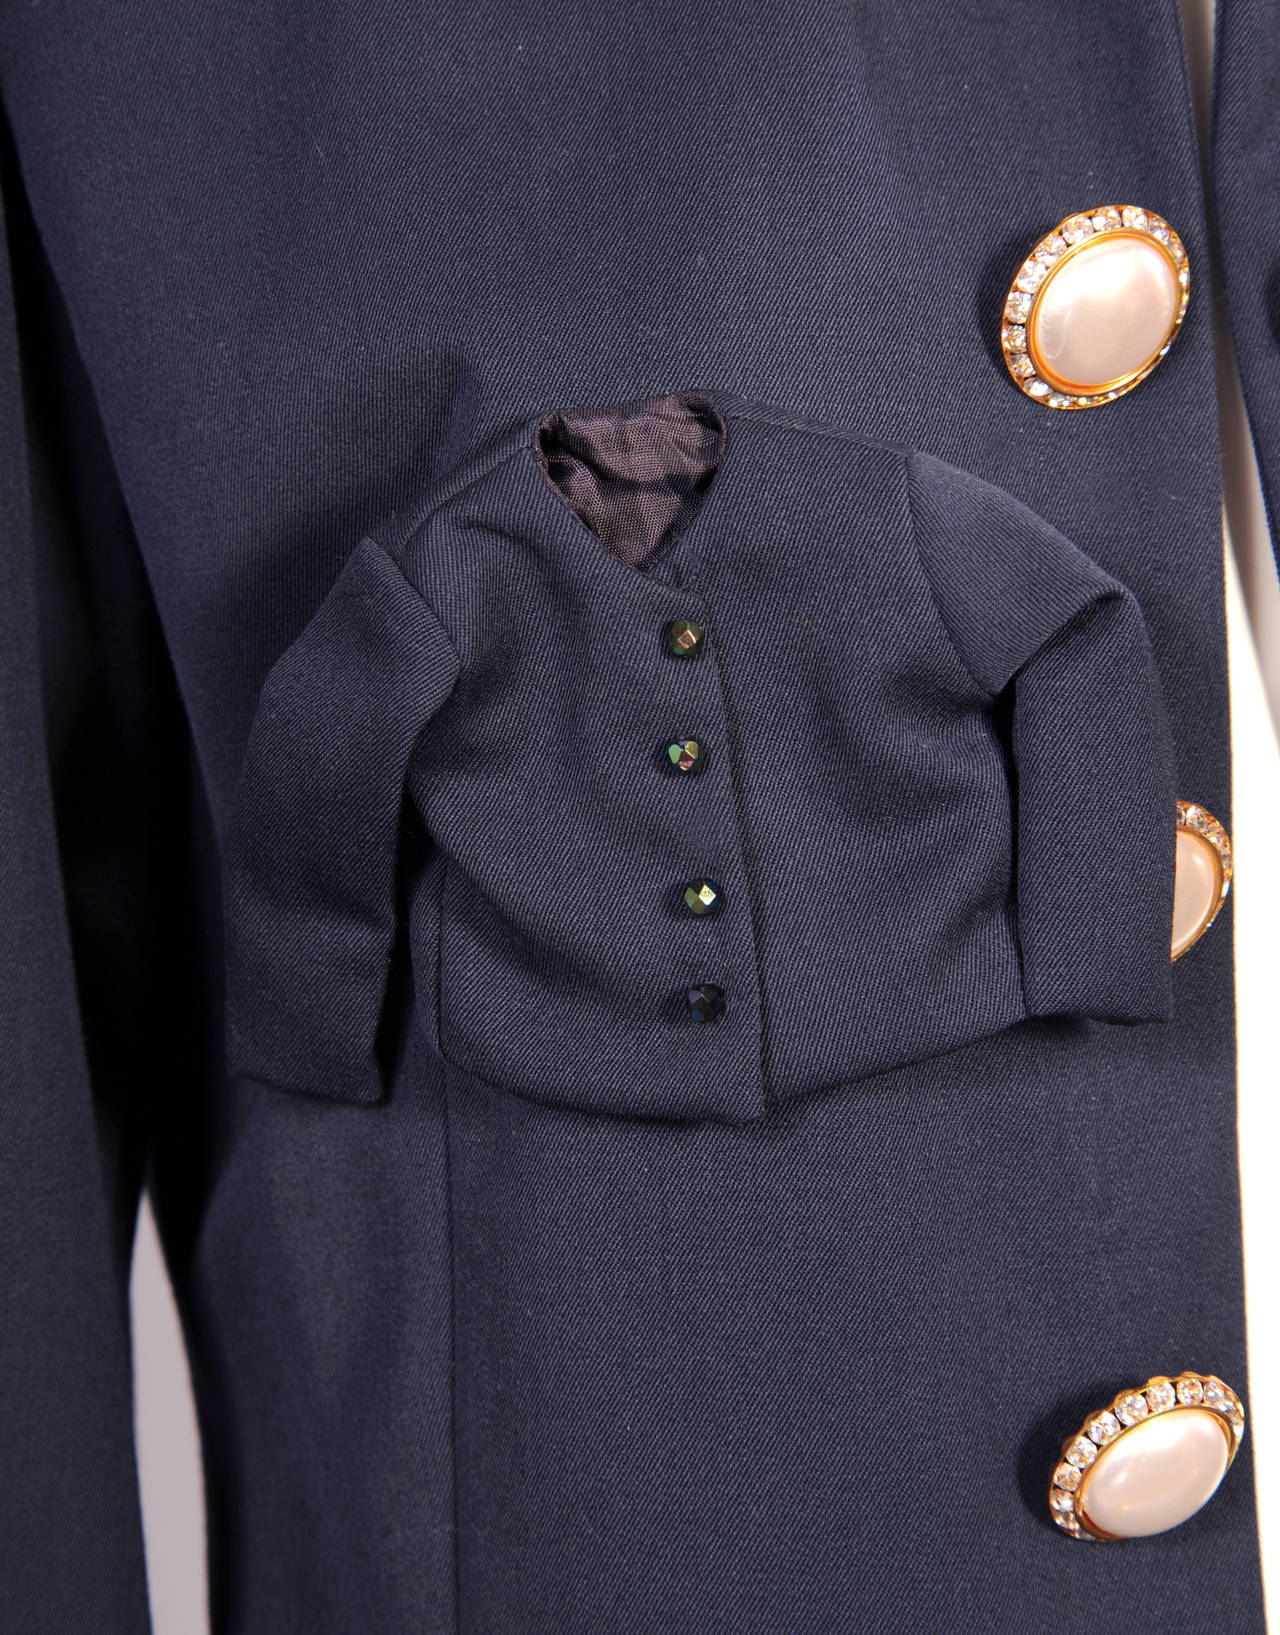 Women's Iconic & Ironic Moschino Couture Suit, Chanel Inspired Suit Pockets For Sale